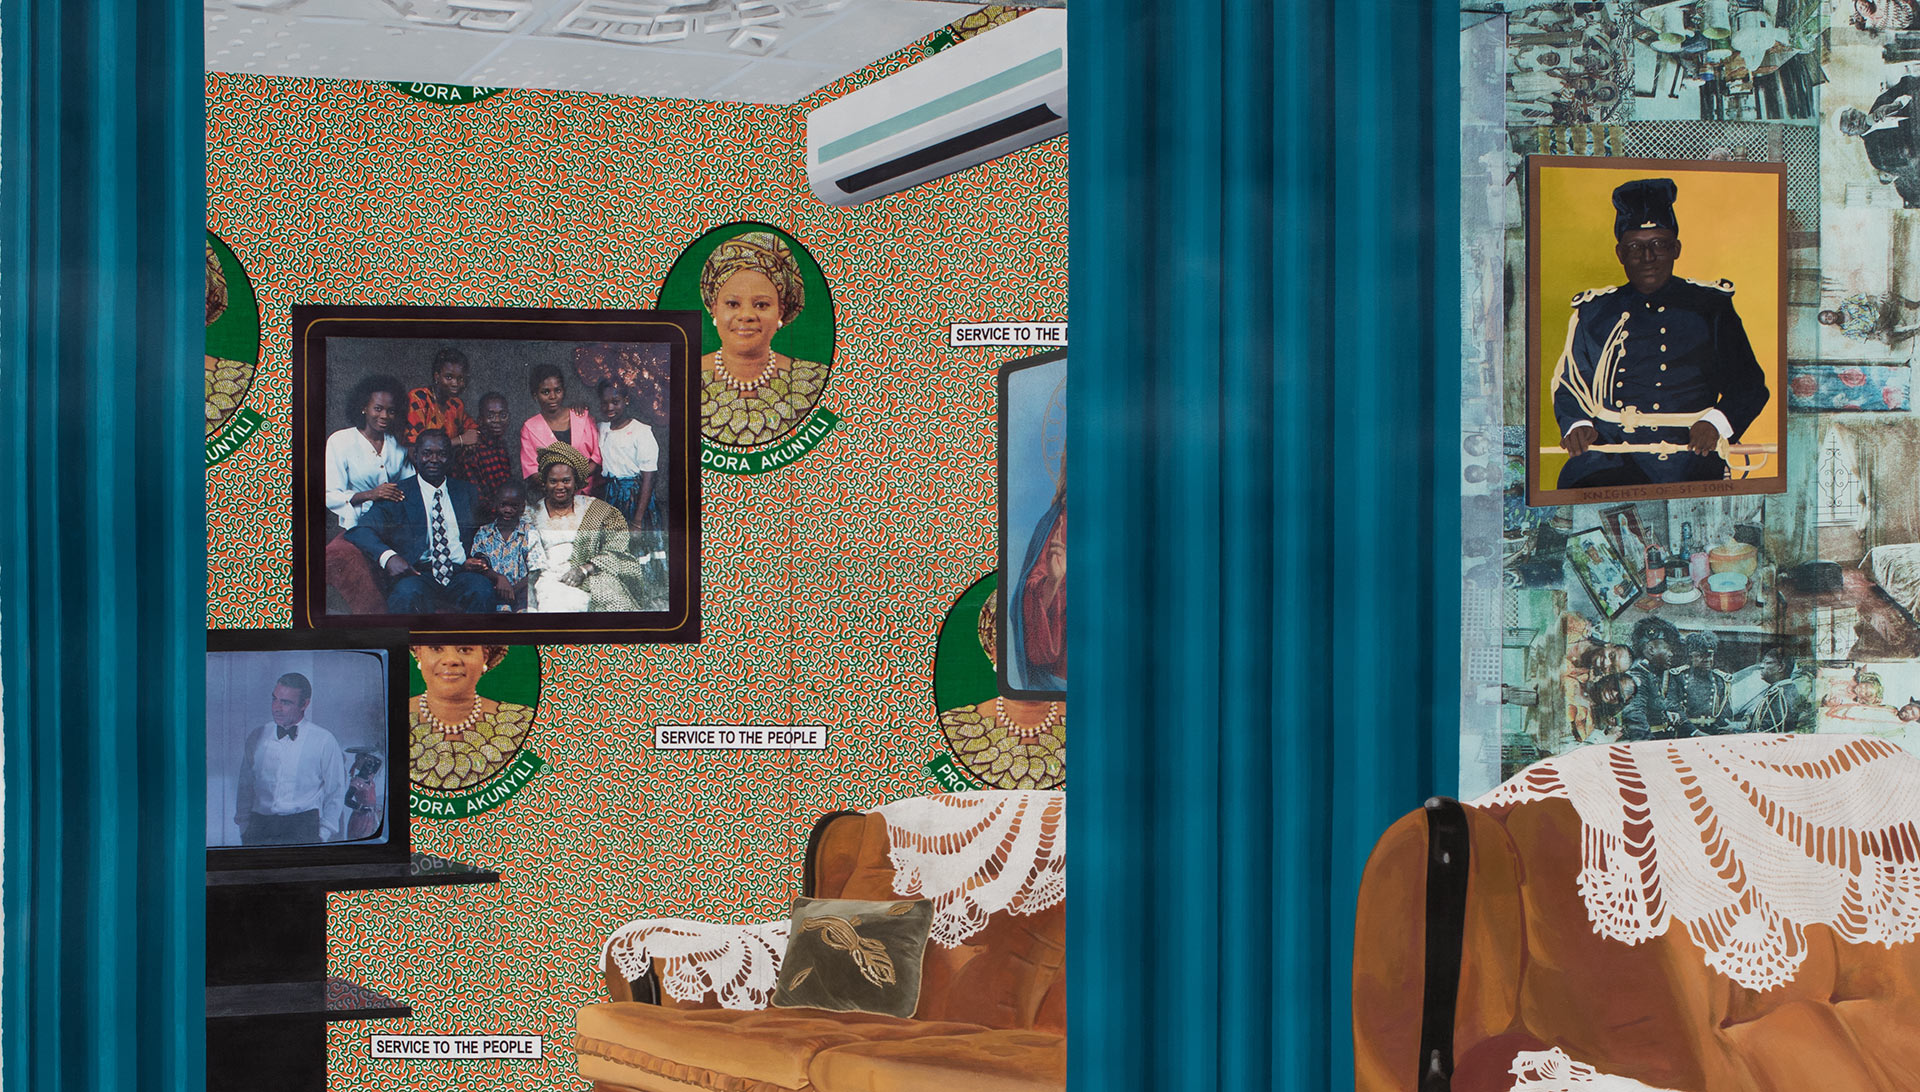 A detail from a painting by Njideka  Akunyili Crosby, titled The  Beautyful  Ones Series #1c, dated 2014 .